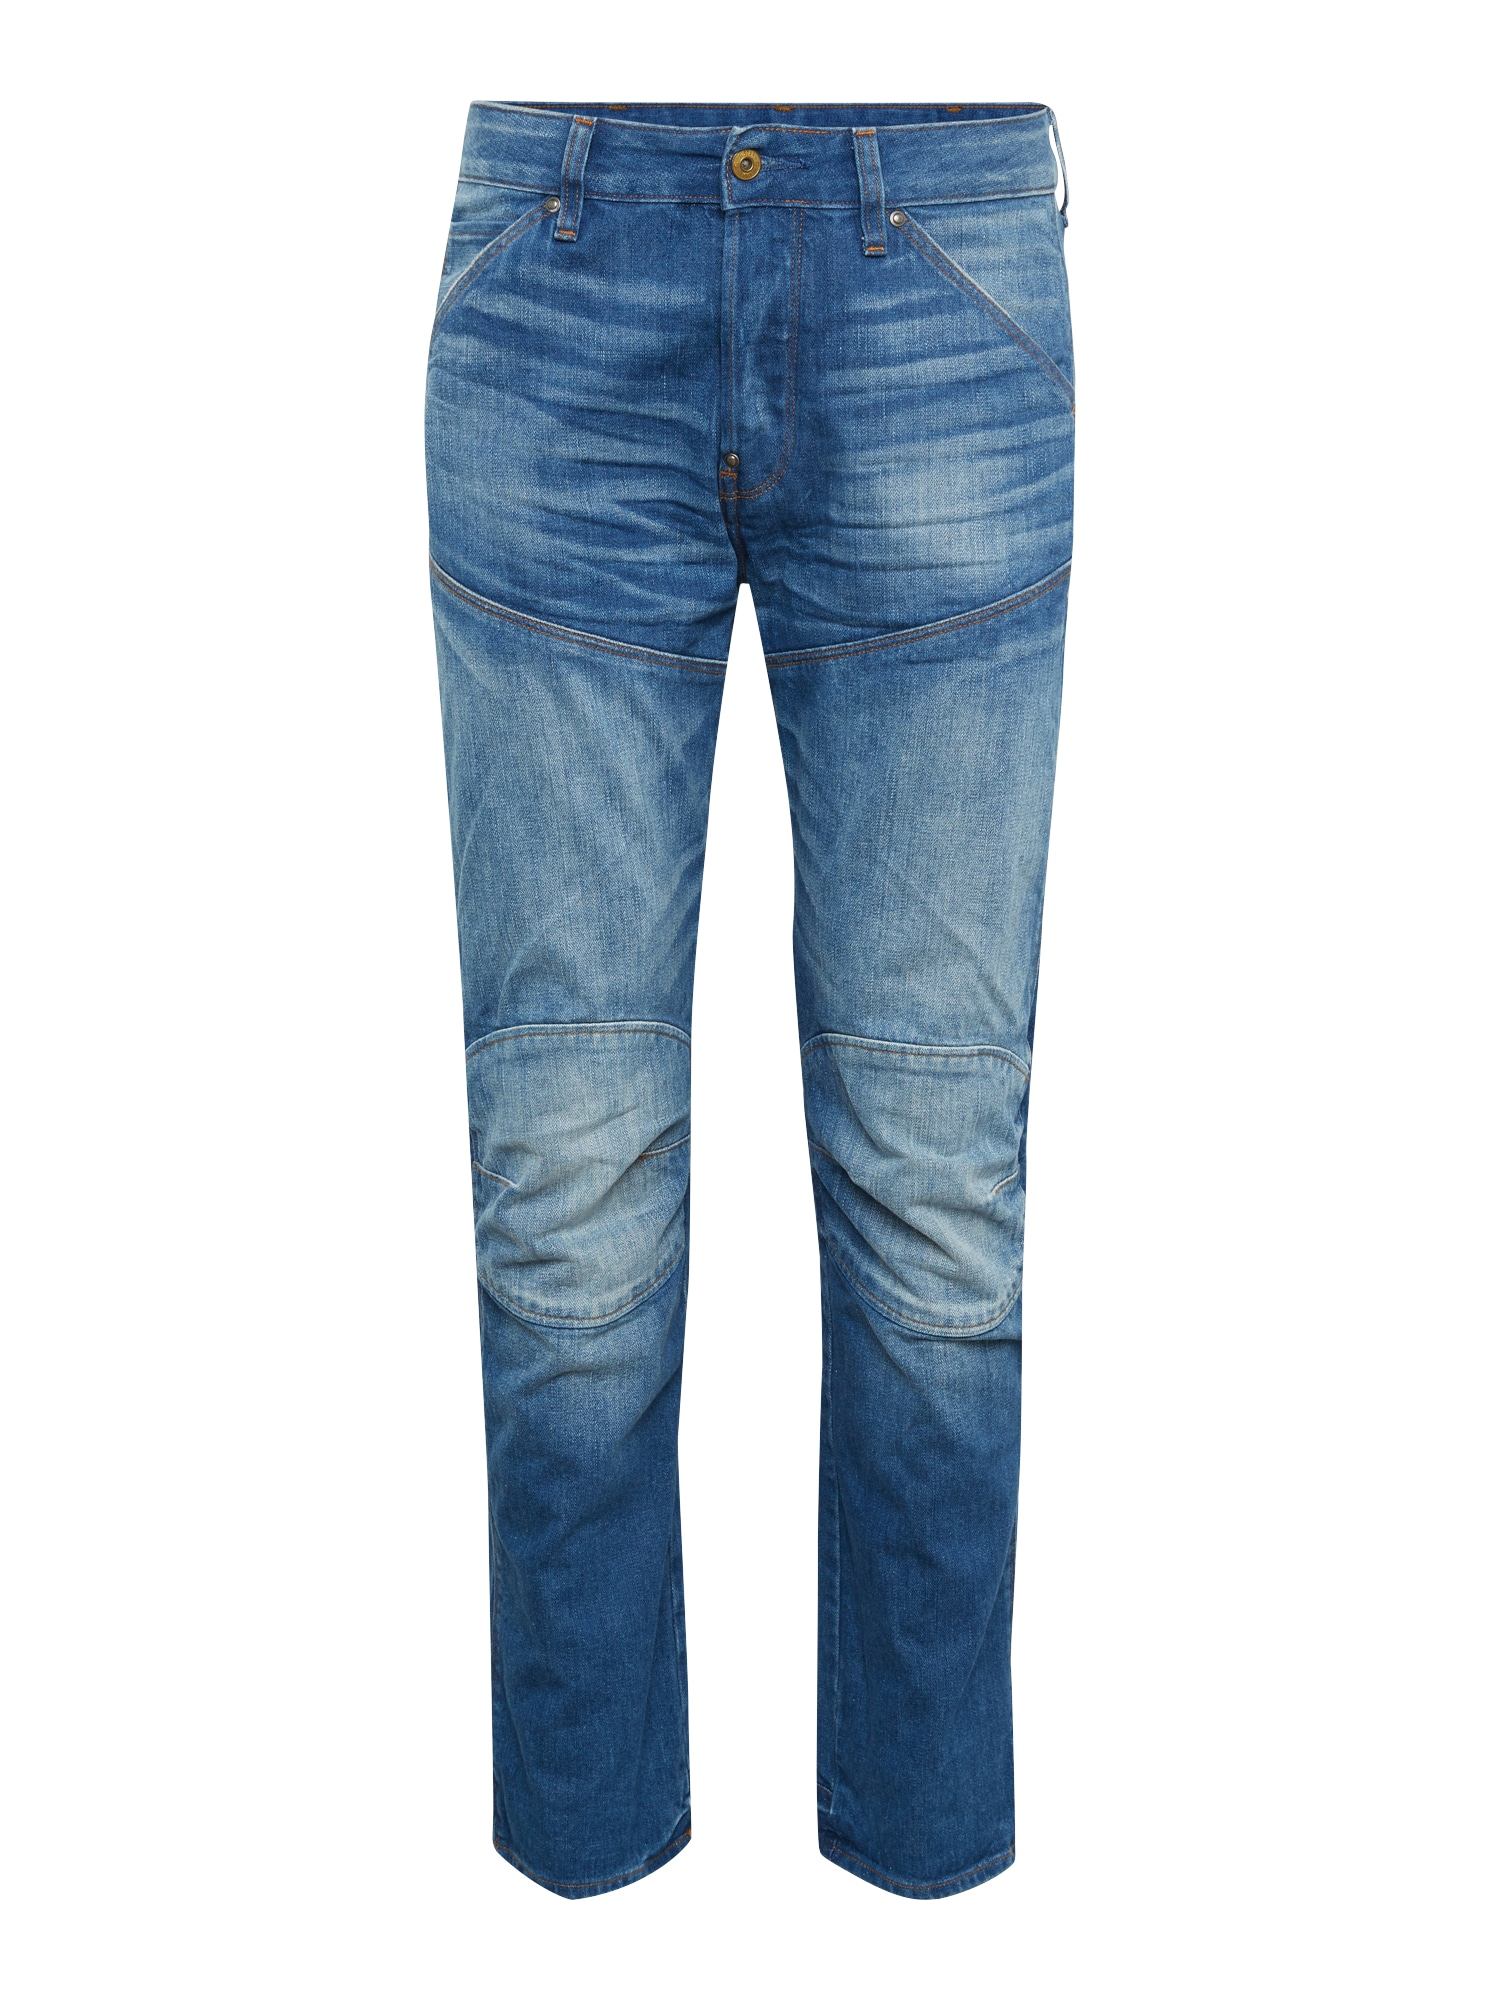 G-STAR RAW Heren Jeans 5620 ELWOOD 3D STRAIGHT blauw denim